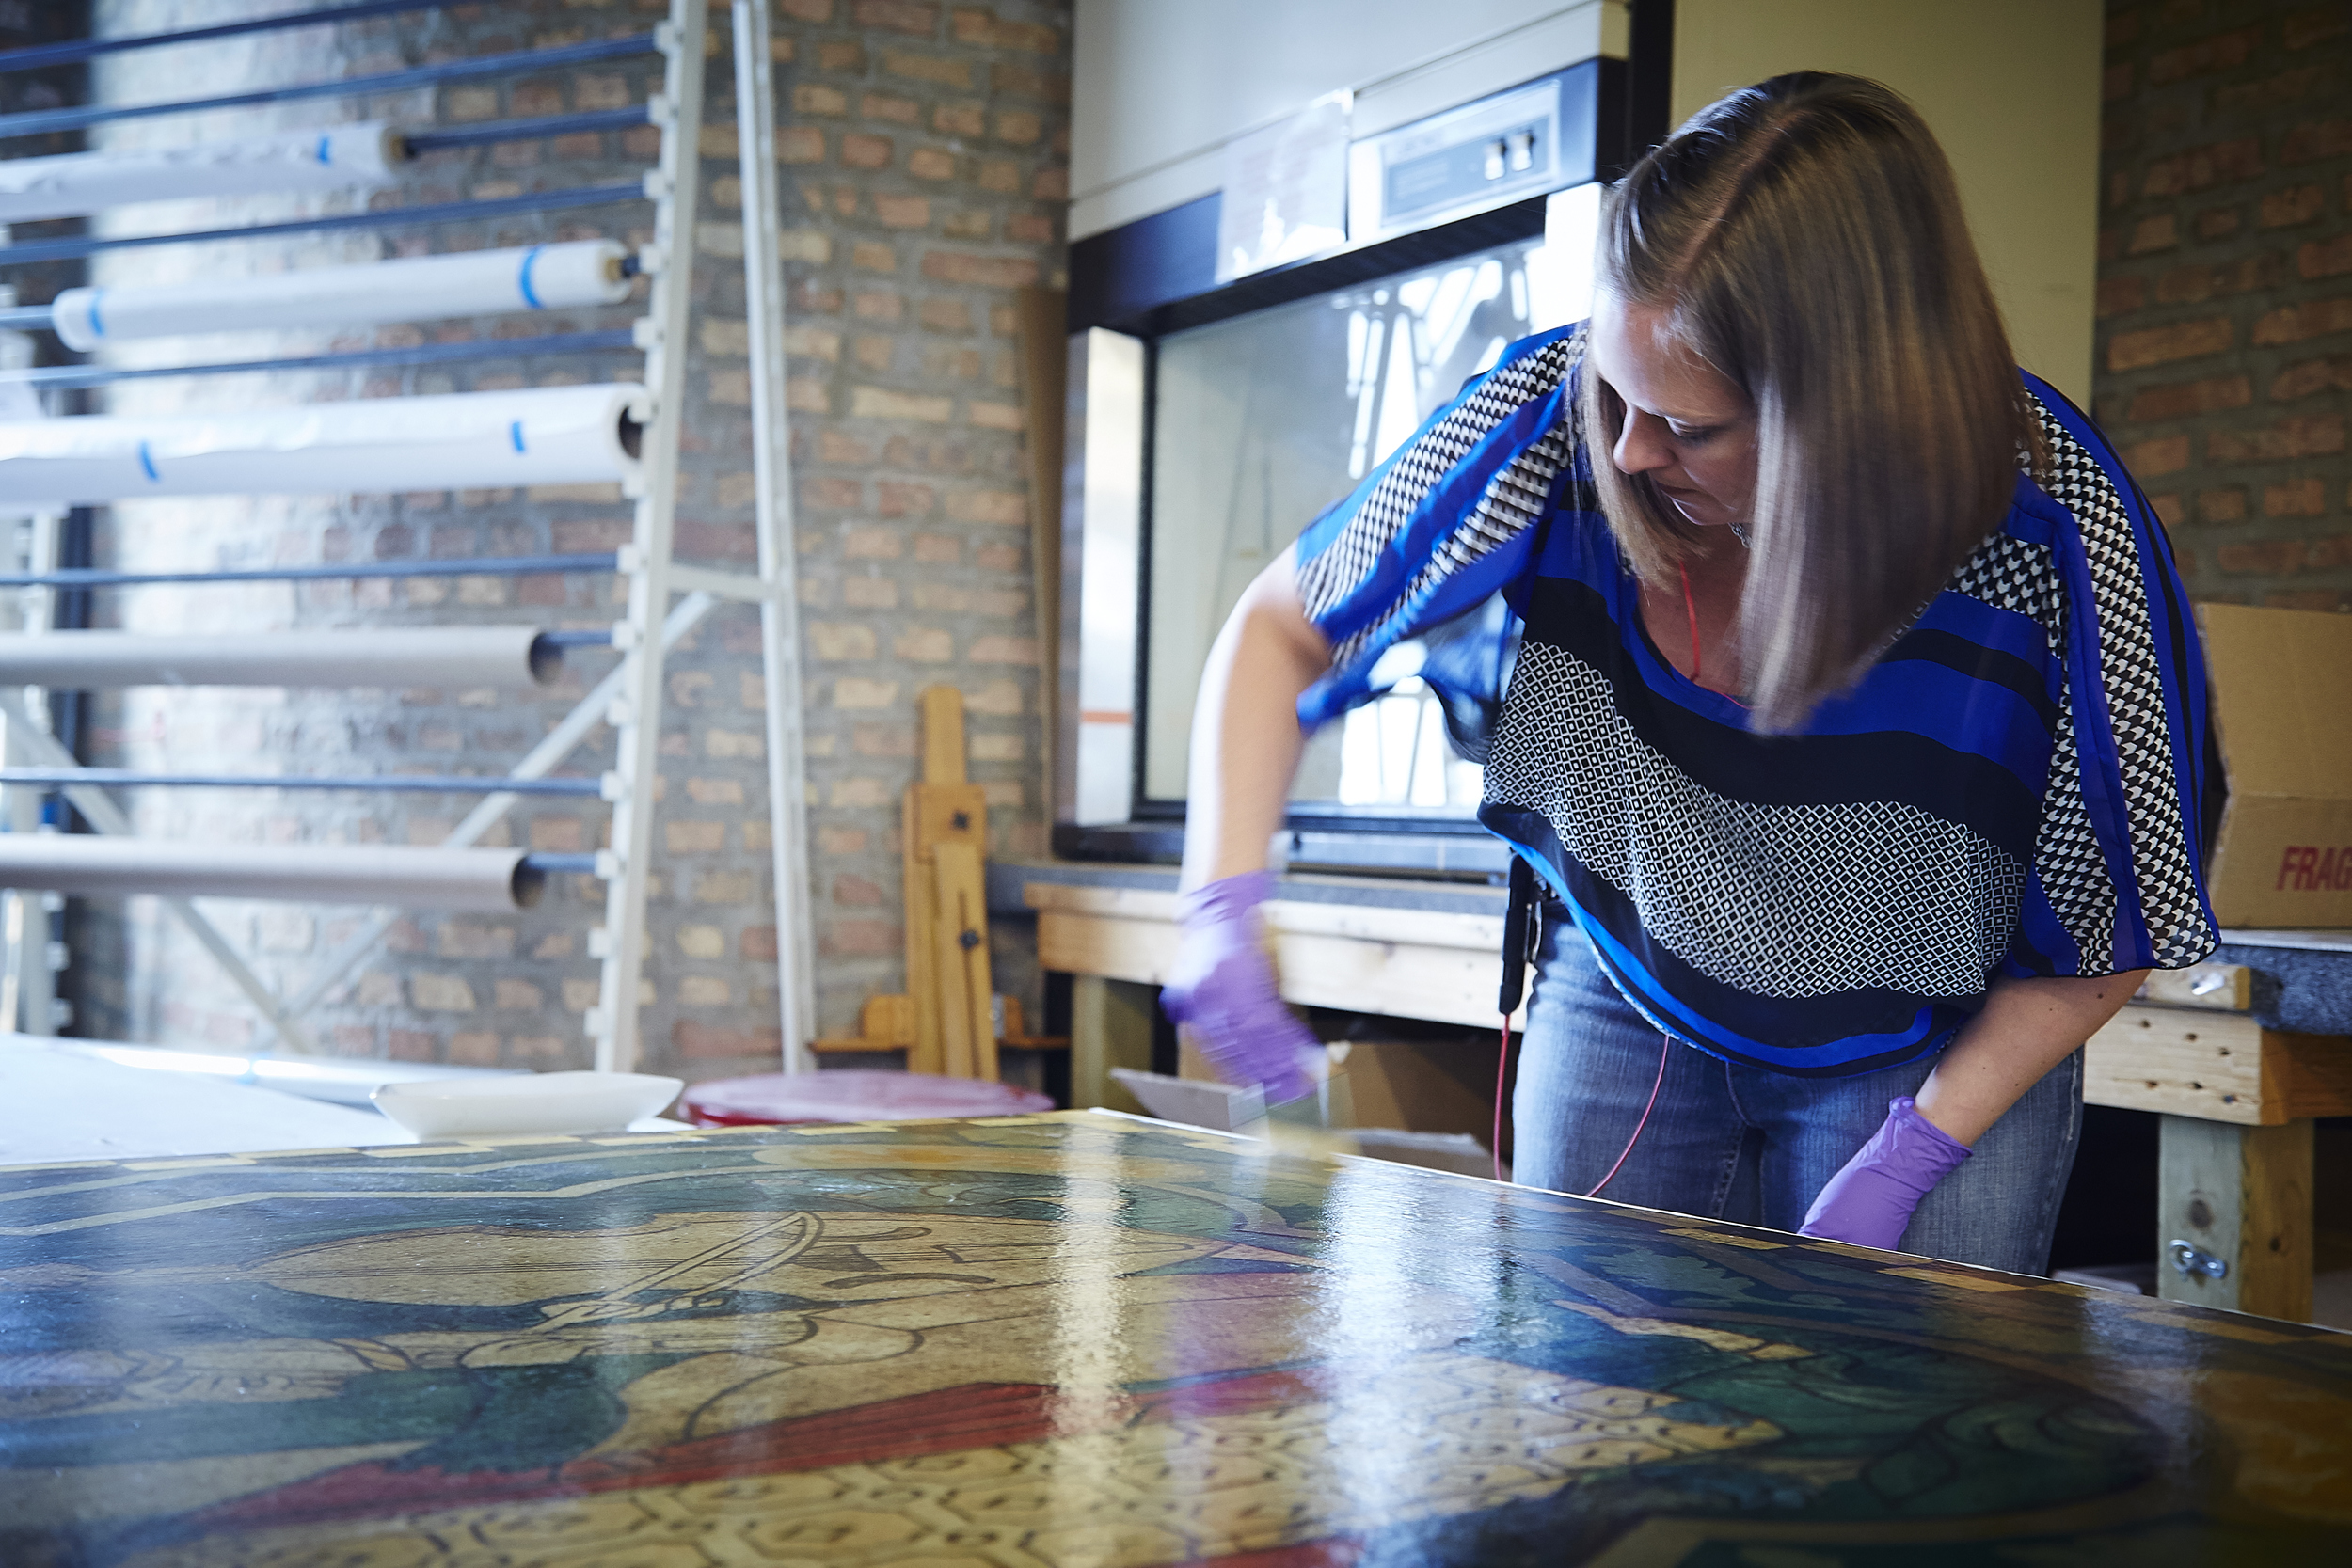 Conservator Amber Schabdach, working on one of the 56 panels that were removed from the Michigan Room ceiling for more extensive treatment back at The Center's Lab.